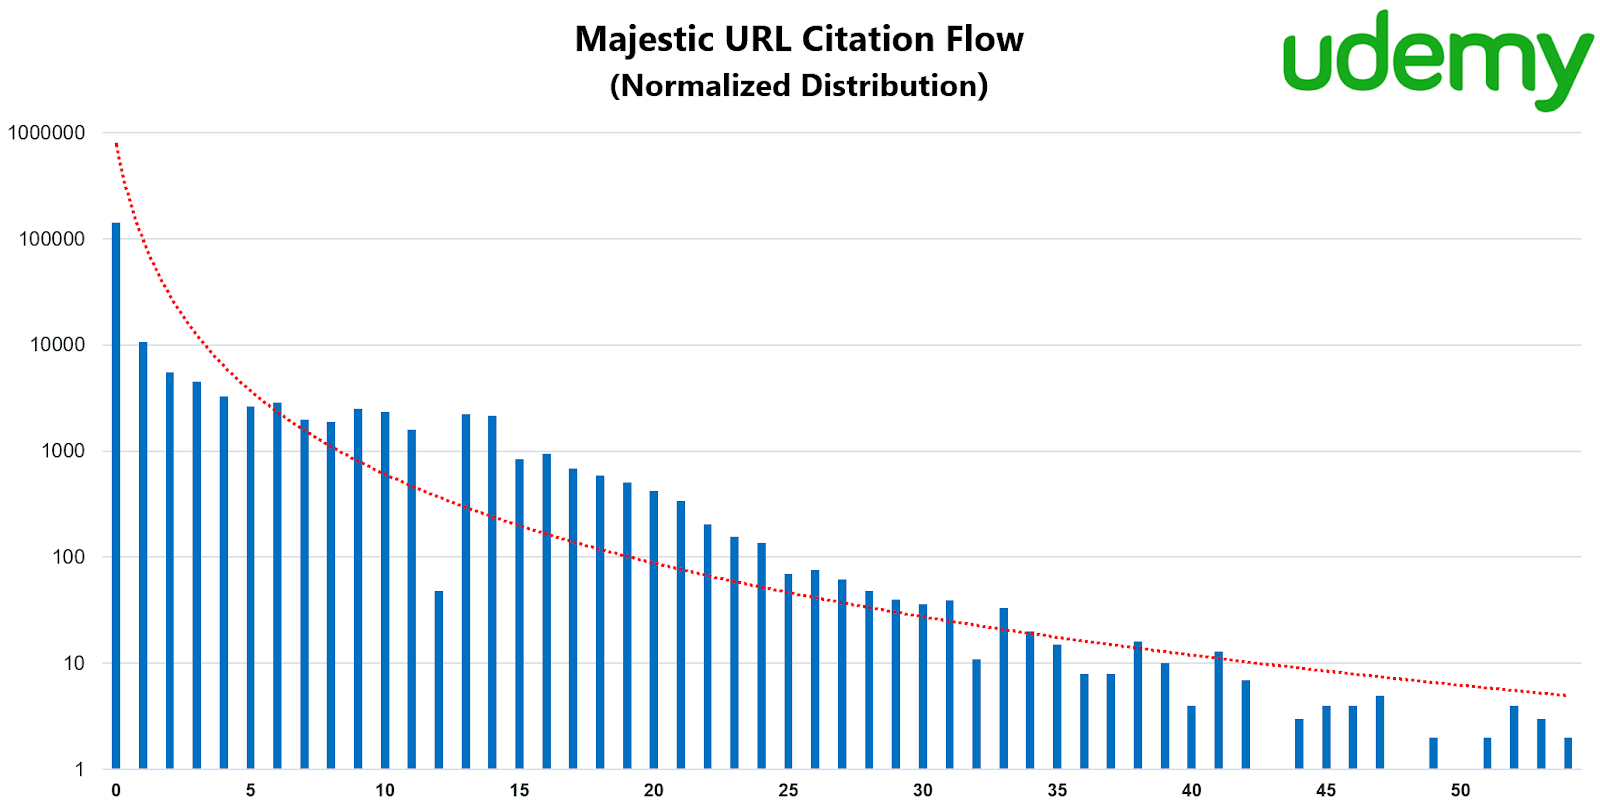 Majestic URL Citation Flow